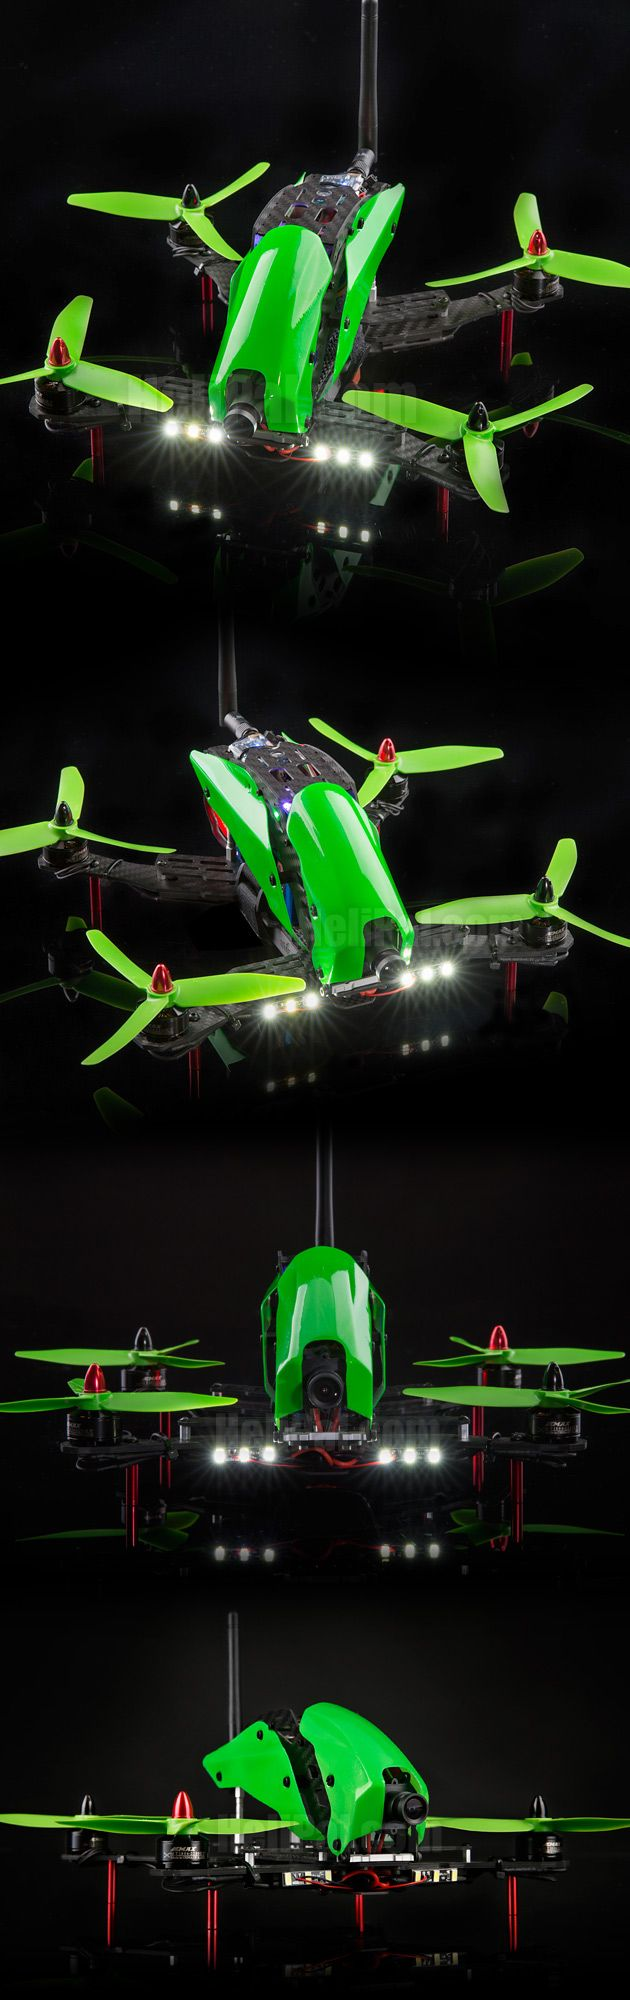 STORM Racing Drone (RTF / TL250H Storm Edition) http://www.helipal.com/storm-racing-drone-rtf-tl250h-storm-edition.html